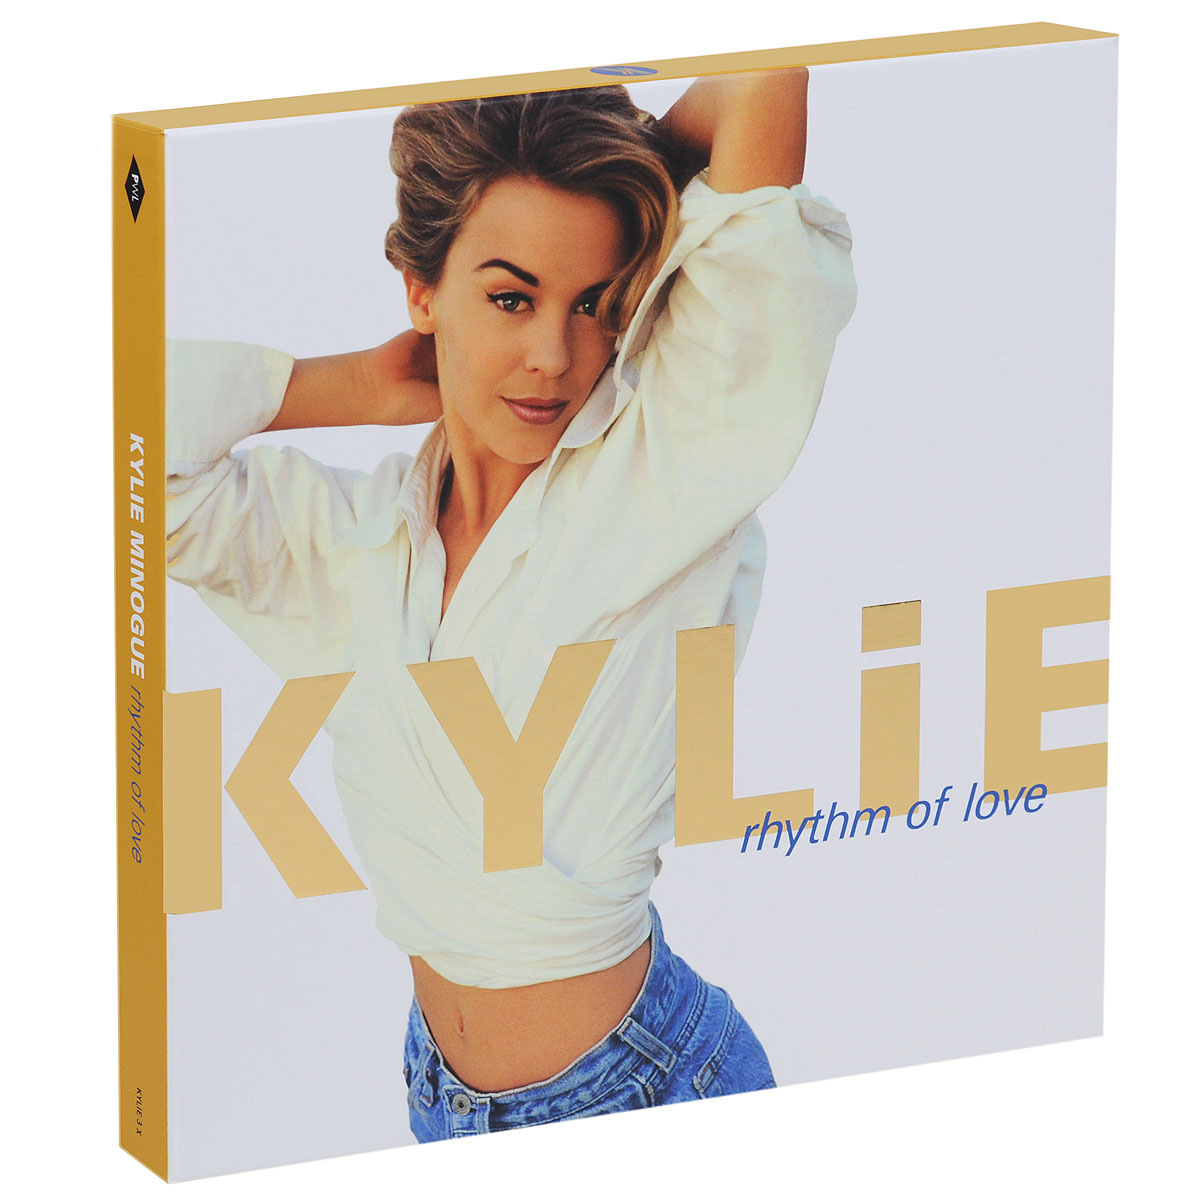 Кайли Миноуг Kylie Minogue. Rhythm Of Love (2 CD + DVD + LP) john constantine hellblazer volume 2 the devil you know